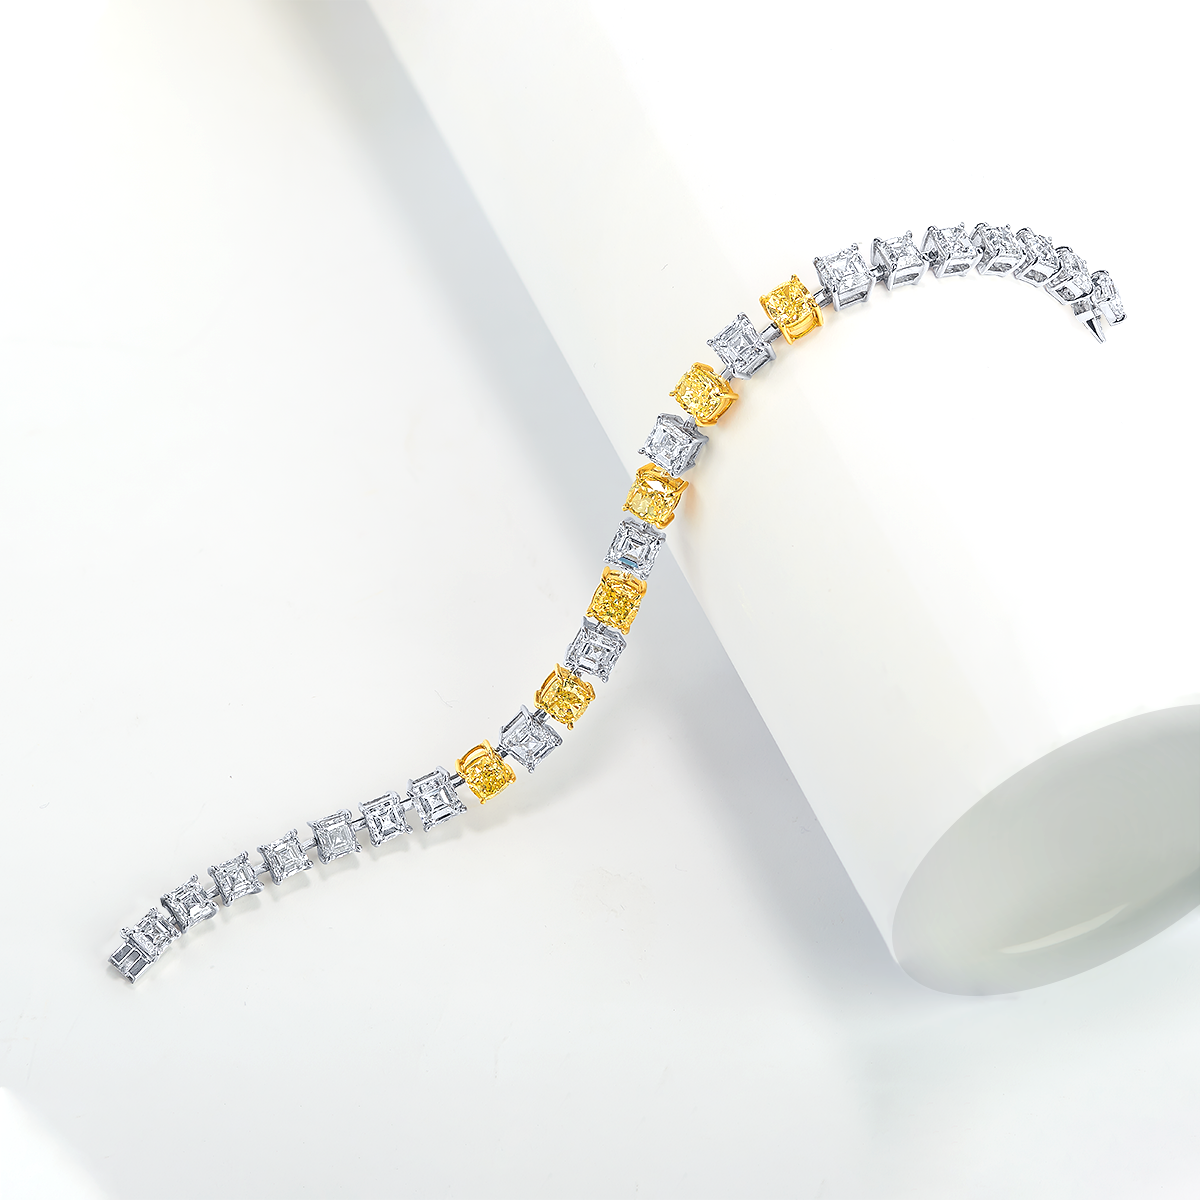 17.2克拉 黃彩鑽鑽石手鍊